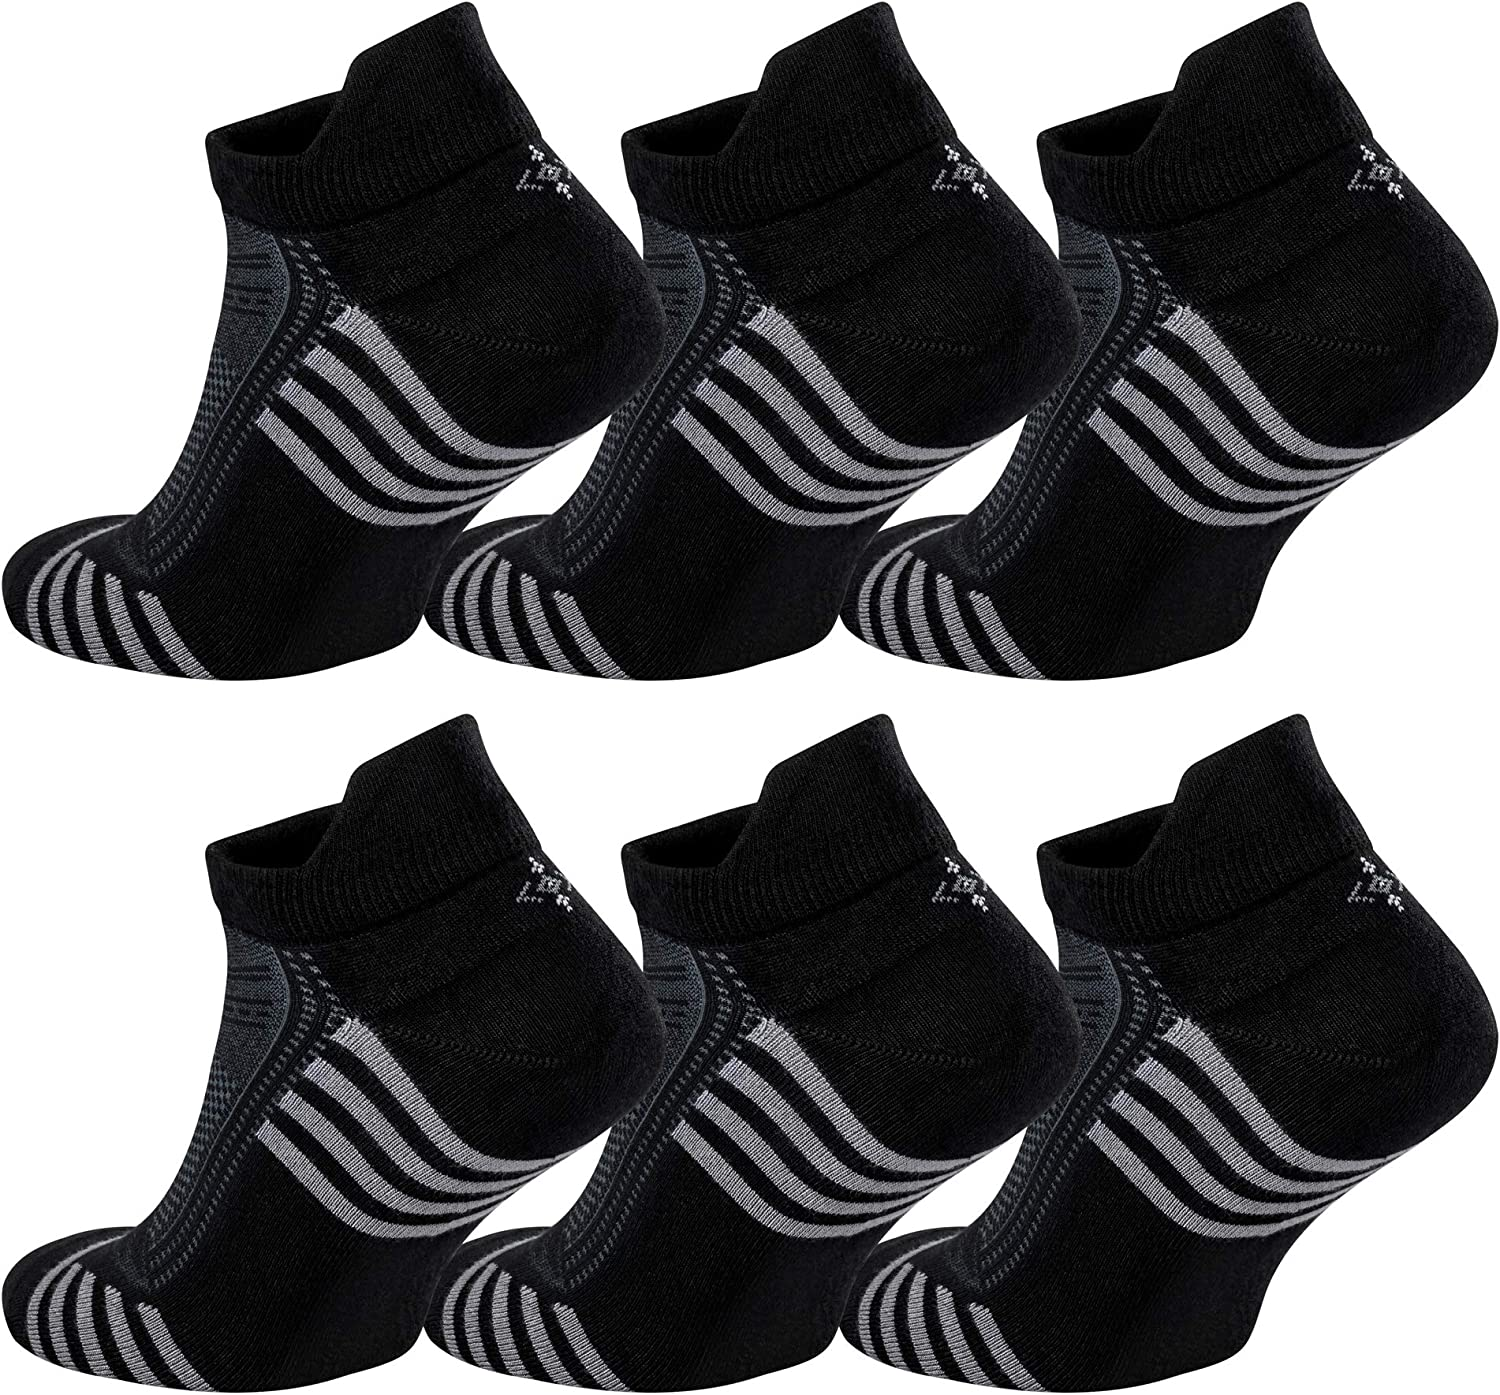 Ankle Socks (6 Pairs) with Heel Tabs Made From Natural Bamboo for Men or Women Sports and Athletic Performance Wear